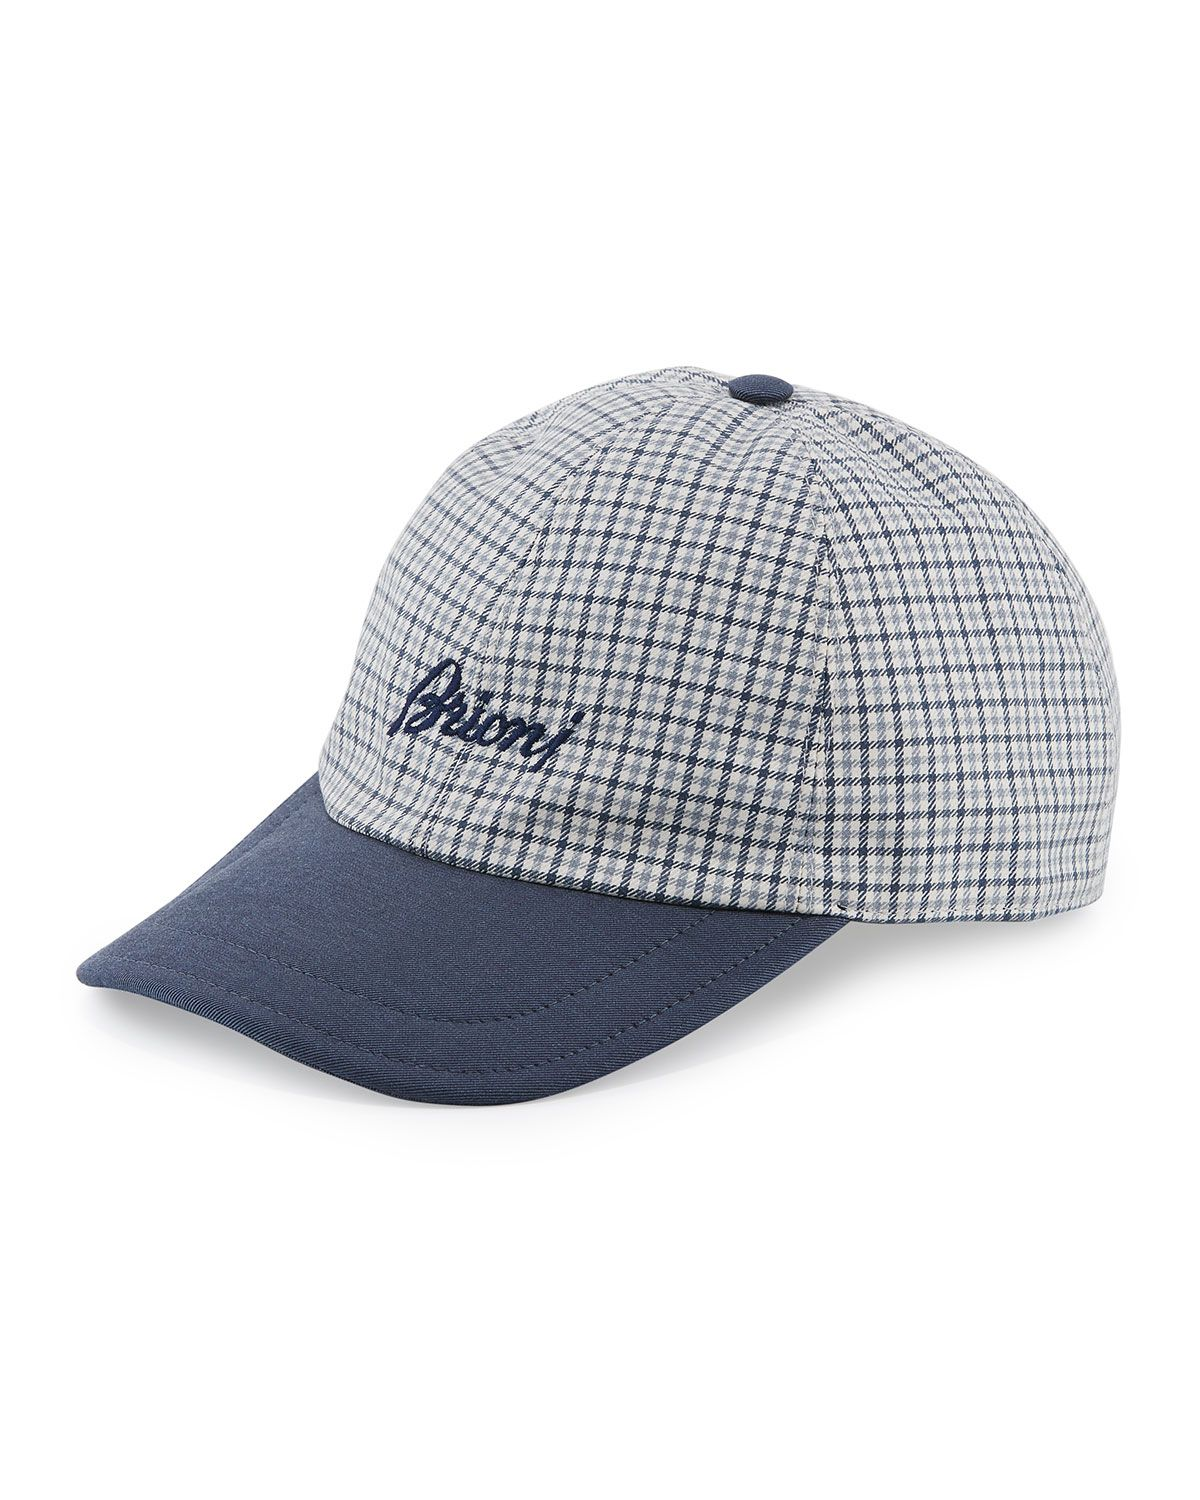 8bcb3b53c8f Brioni Checkered Baseball Cap